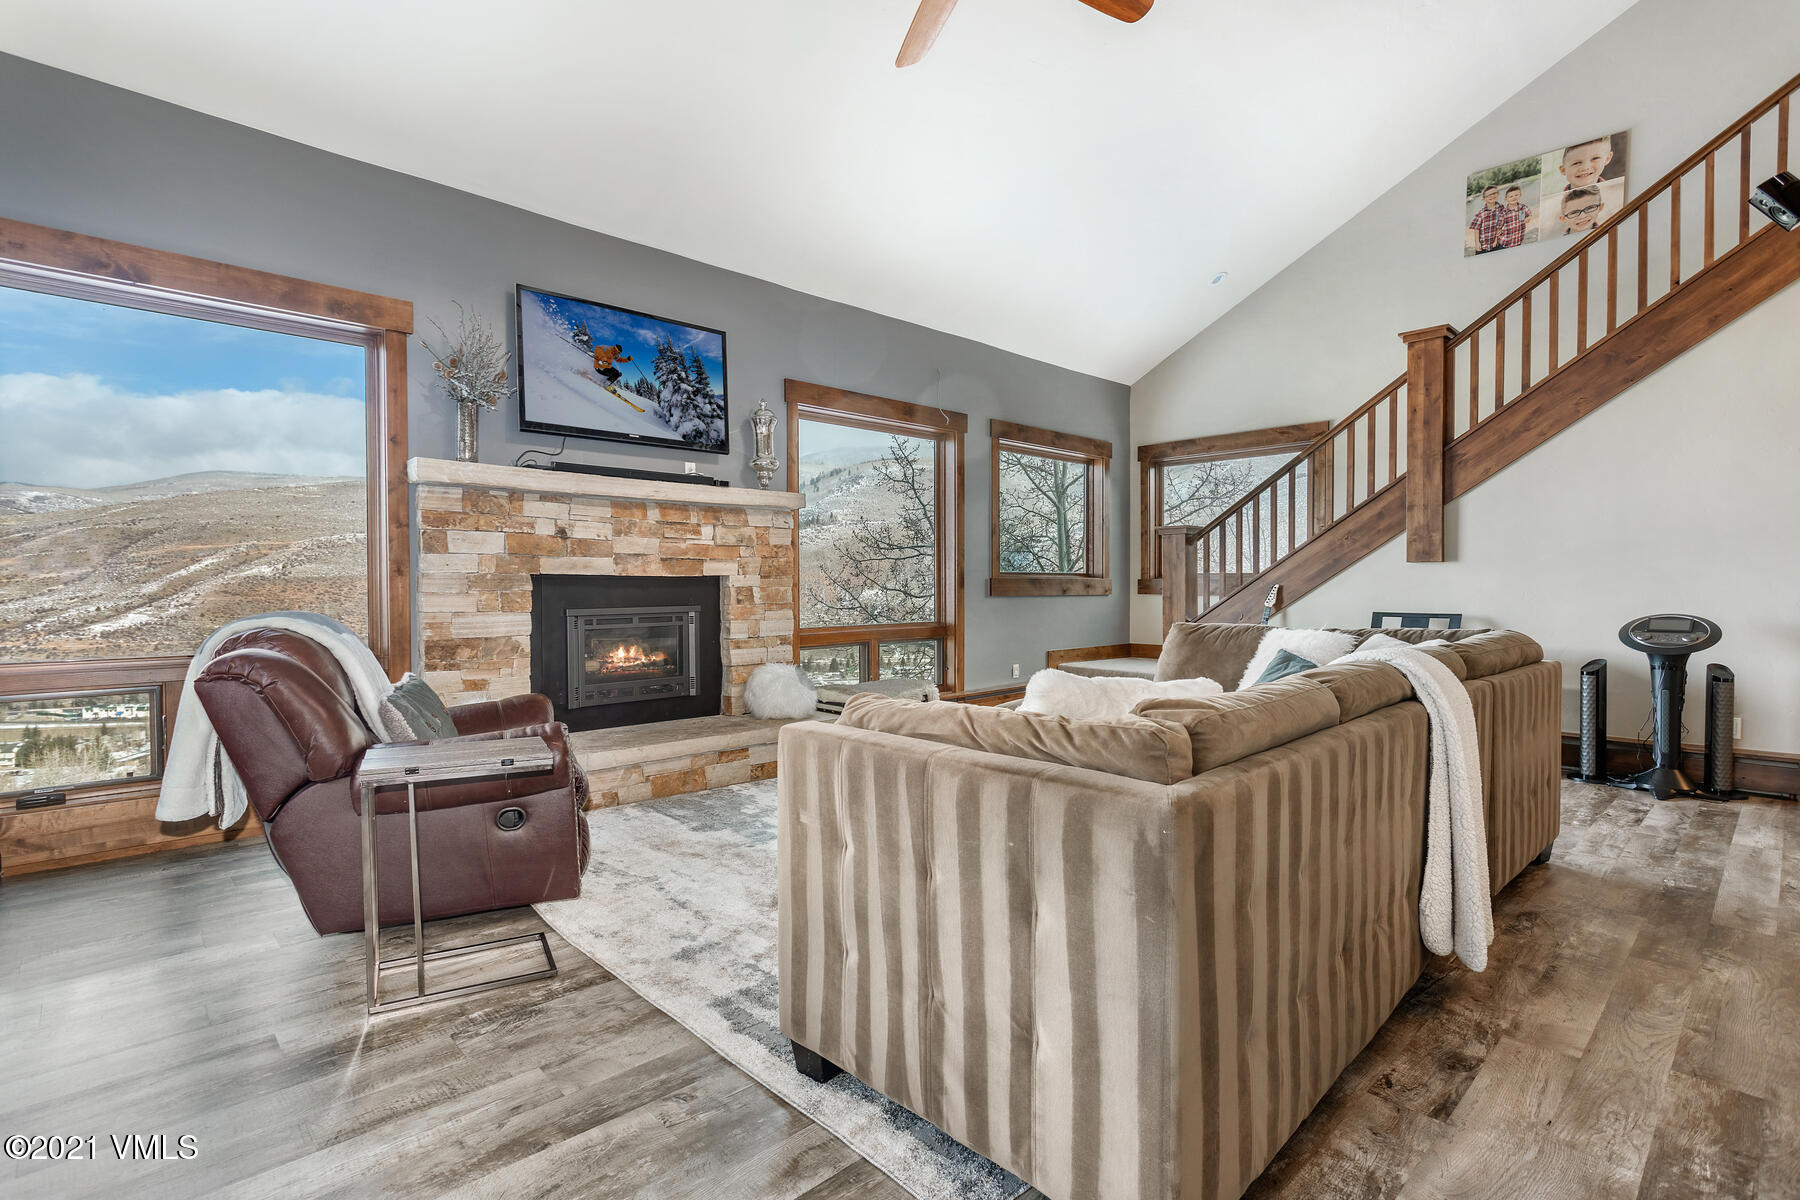 Situated atop Whiskey Hill with incredible western views of the valley, this home is not to be missed!  It will stand out amongst its competition.  The home has undergone a gorgeous remodel and spaces have been reinvented for convenience and a modern lifestyle.  Upon entering the home you are greeted with a large entry and mud room, complete with built in cubbies and storage for those with an active lifestyle.  There is an oversized garage with high ceilings and a ton of additional closet space and storage for everything from bikes and skis to rafts and much more. Just off the garage there is a heated den or office space, complete with a lofted bed for additional sleeping space, a sink and plenty of built in storage and desk space.  As you head to the main level of the home an abundance of natural light enters through picturesque windows.  The flex space just off the kitchen allows for a second living space and has direct access to the private back yard.  The dining room views are spectacular!  Originally a sunroom, it has an open air feel for a tremendous amount of direct sunlight or dining under the stars.  The kitchen has been completely remodeled with a Wolf Range and new LG Electronics Smart Refrigerator.  Just off the kitchen is a generous living room with vaulted ceilings, an open staircase, wet bar and large windows allowing for natural light and incredible views all day long.  There is a bedroom and bathroom on the main level complete with a private deck to relax and enjoy coffee on beautiful summer mornings.  As you head upstairs there is an additional bedroom with a loft and/or storage and the master bedroom complete with a 5 piece bath, dual vanity sinks and a large walk in closet. The driveway is heated.  Whether you are looking to upgrade, acquire your first mountain home or are just ready for a change, this wonderful home is an excellent opportunity to start enjoying the mountain lifestyle you have been wanting!